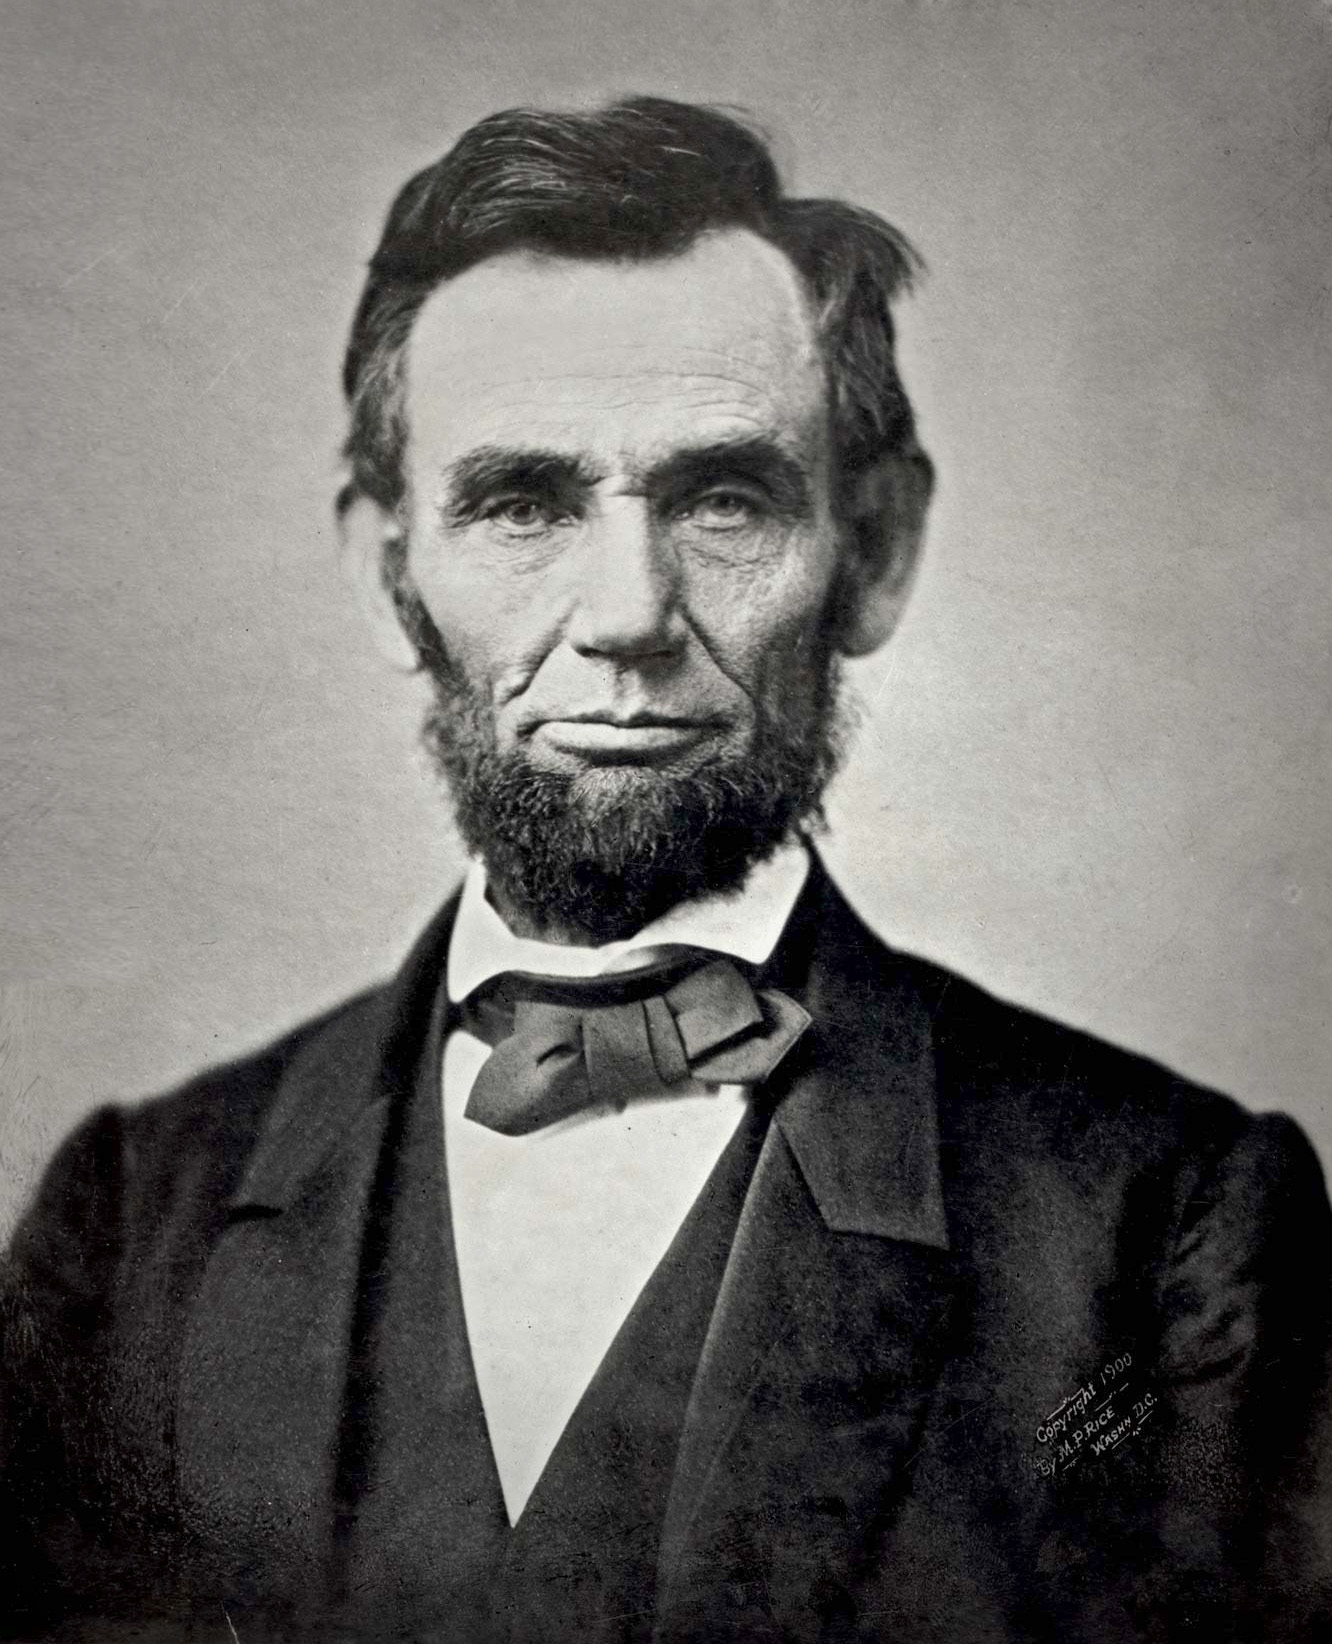 https://upload.wikimedia.org/wikipedia/commons/1/1b/Abraham_Lincoln_November_1863.jpg